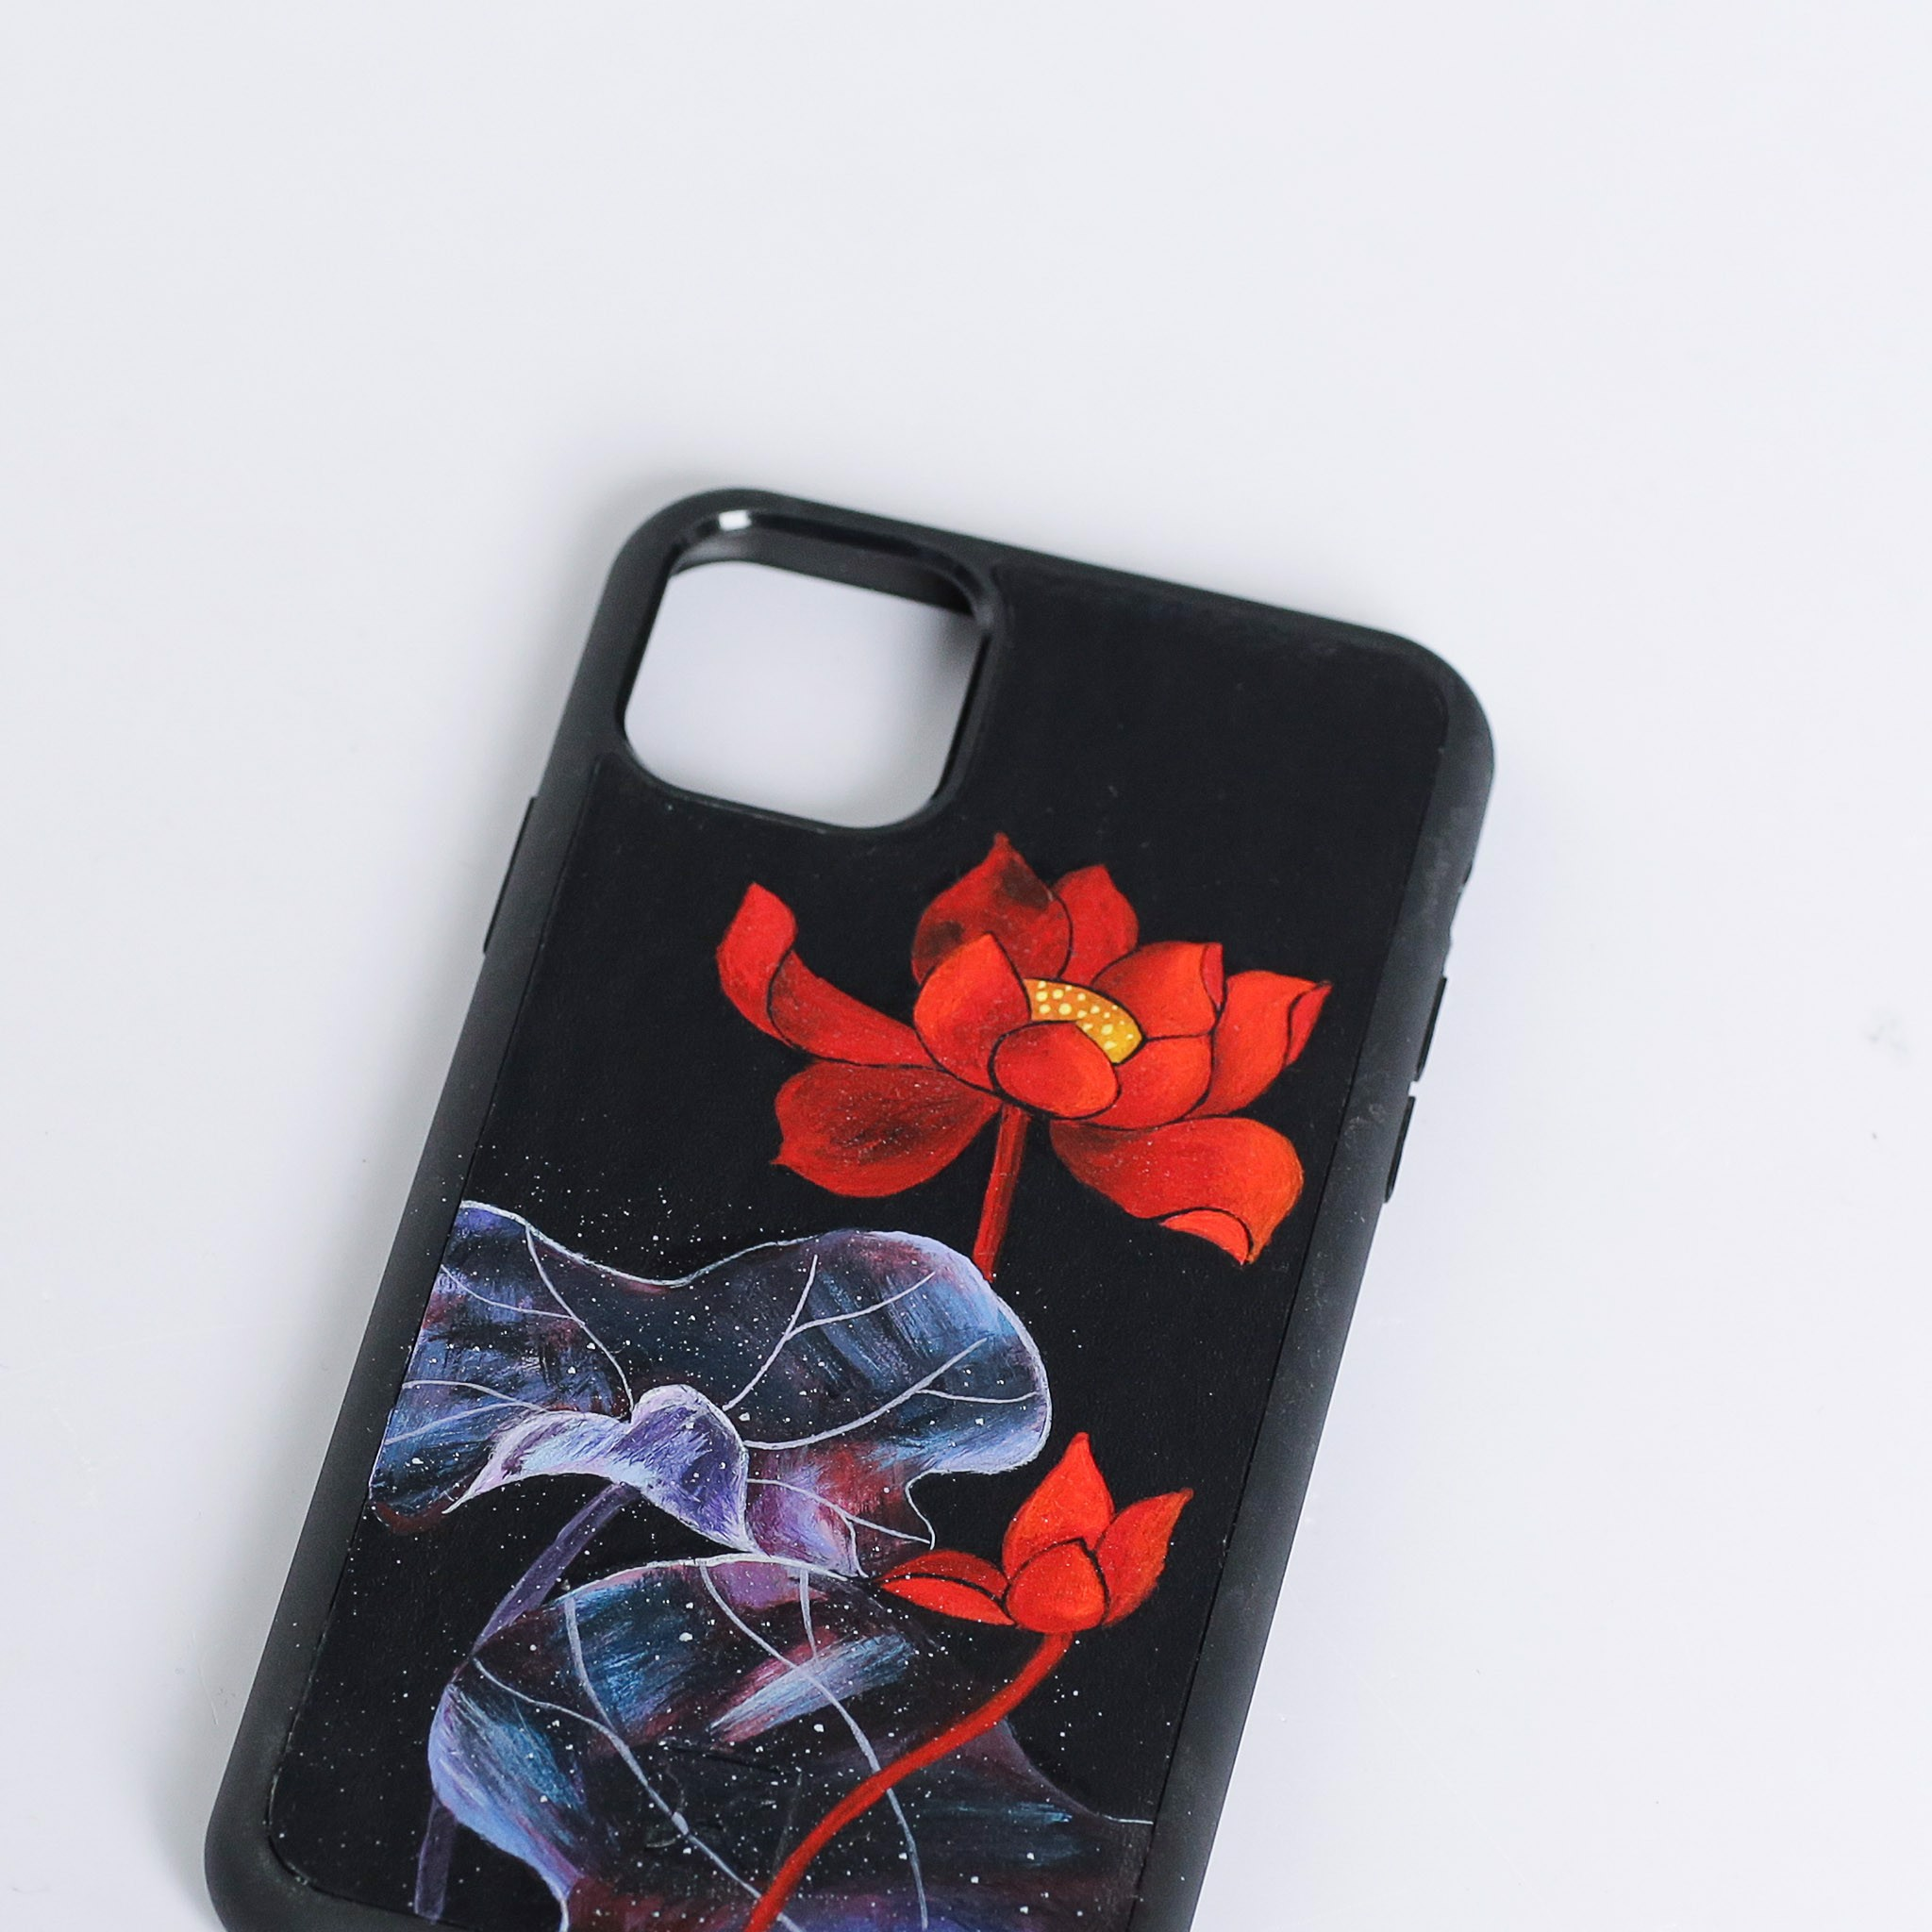 Case iPhone 11 Max De114-Sen Cổ